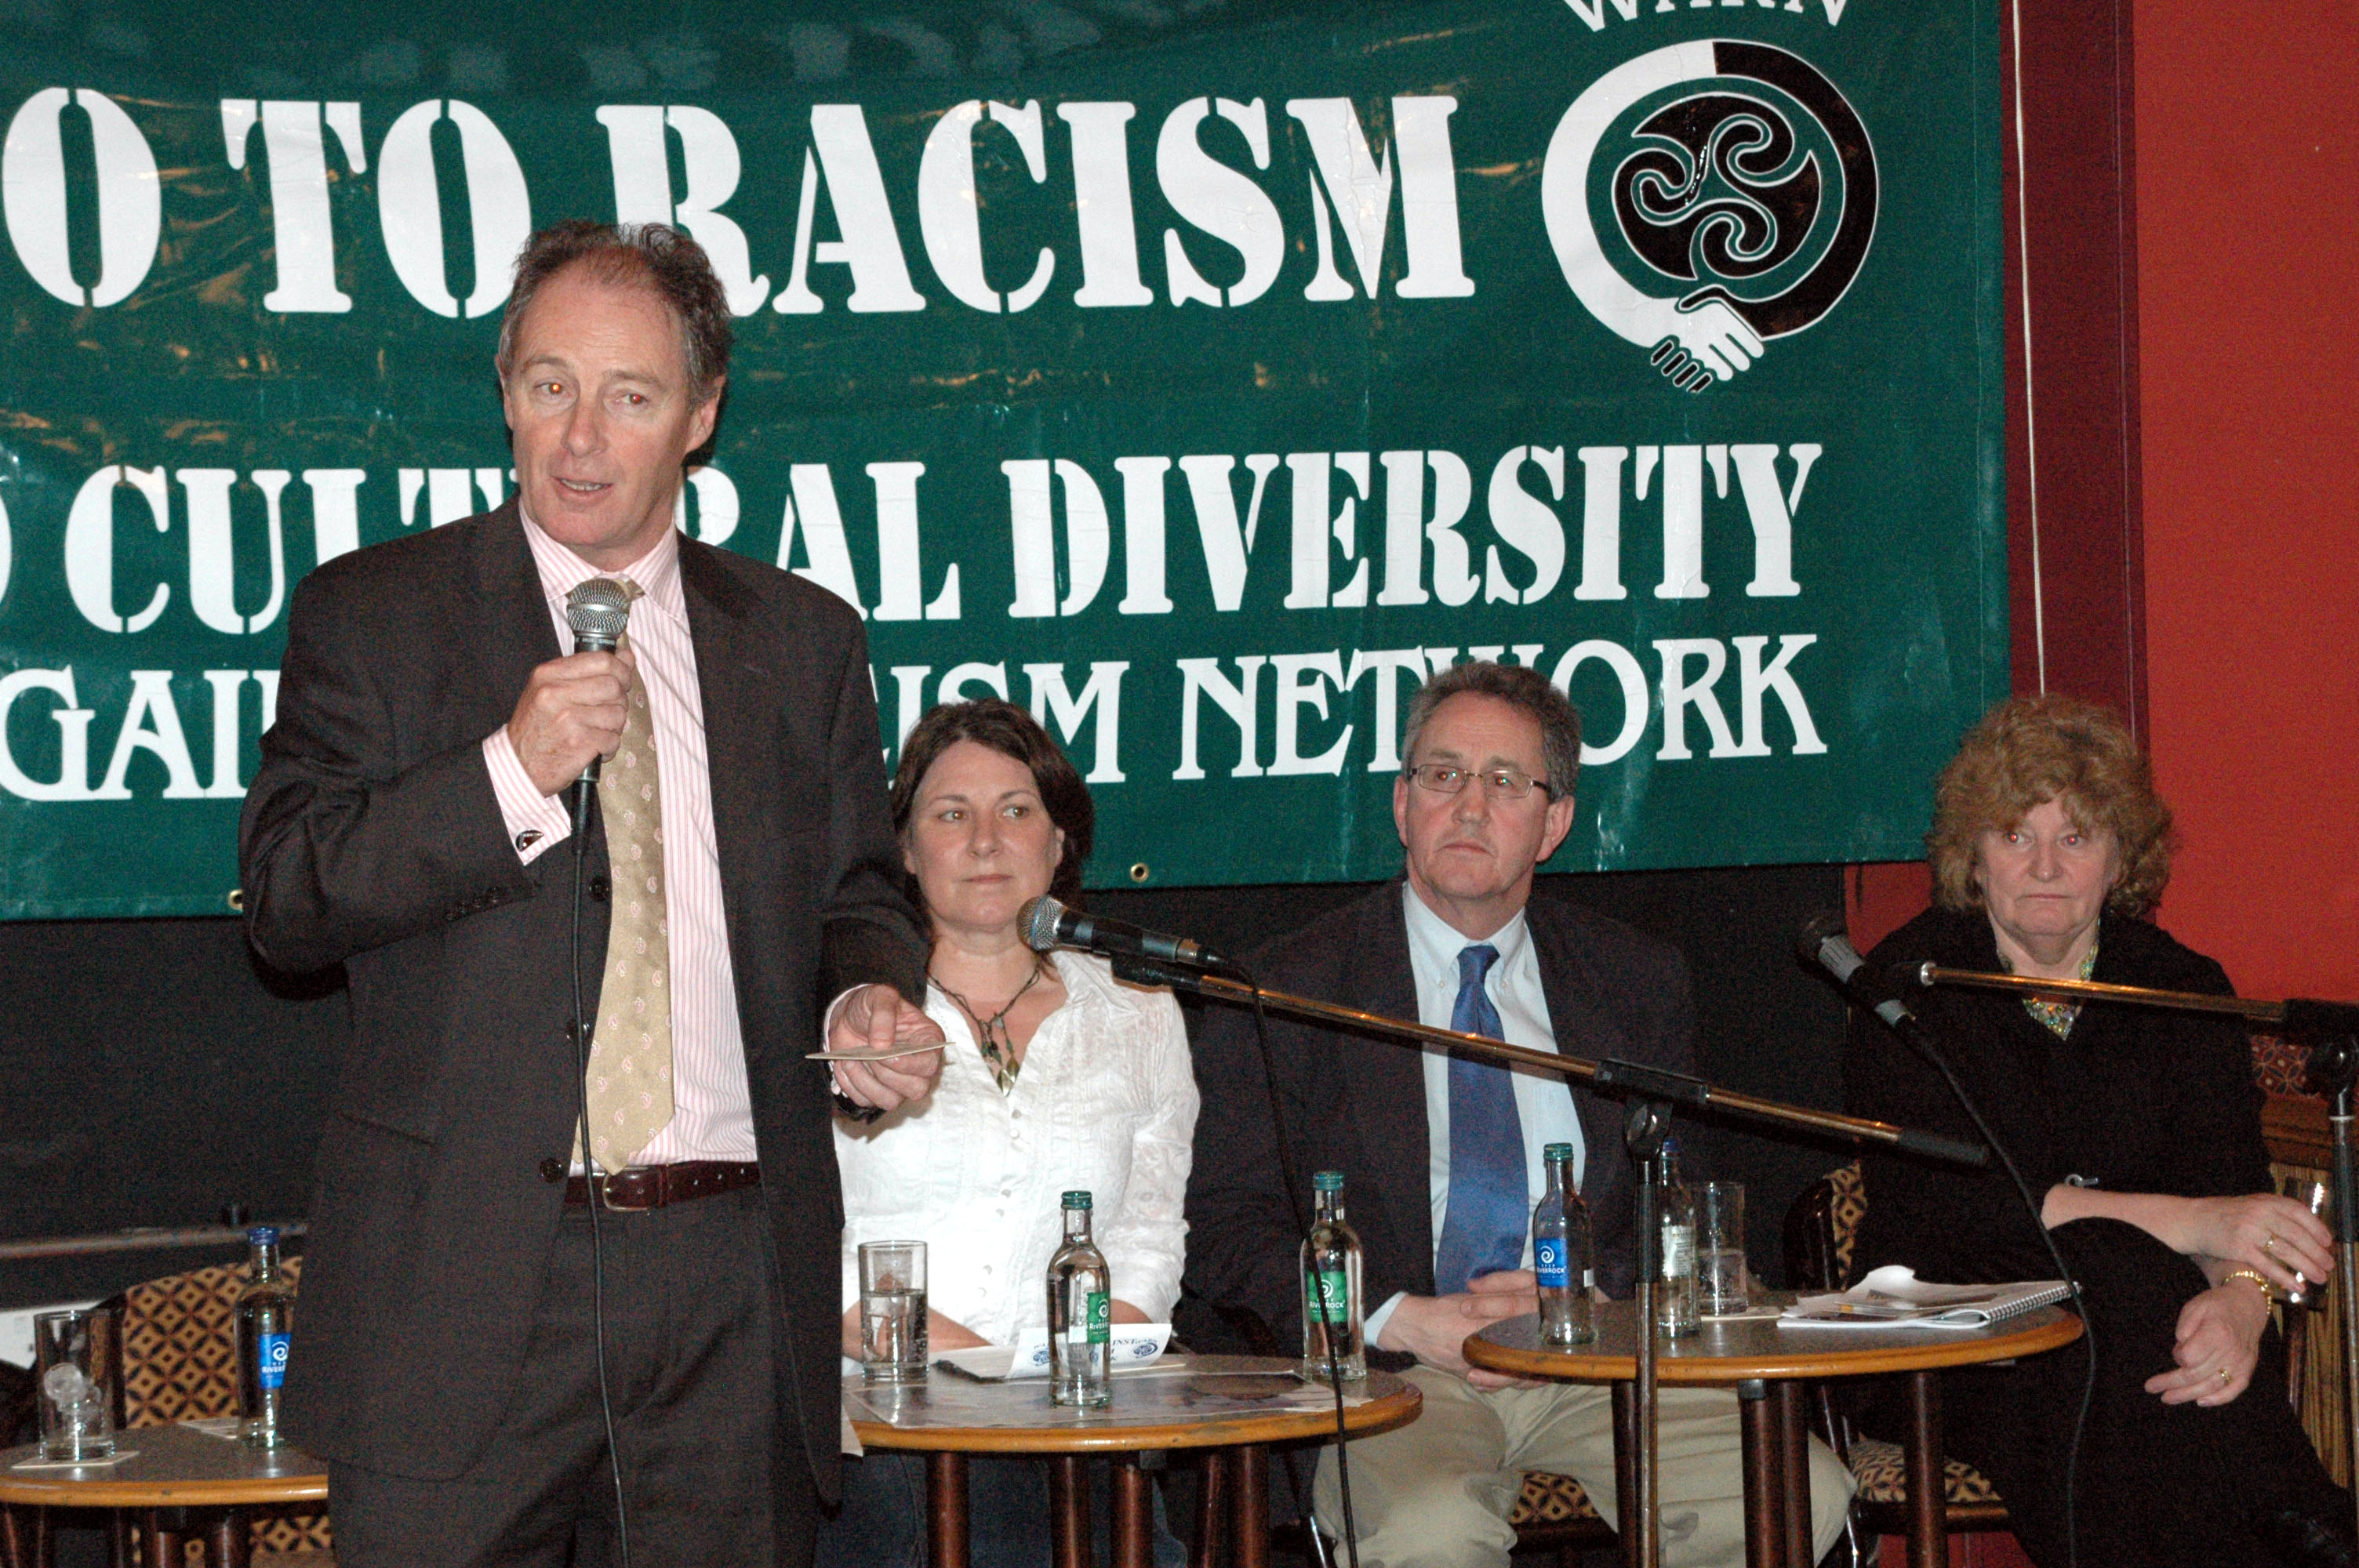 brian-kerr-una-marron-mickey-culbert-and-pamela-dooley-at-launch-of-anti-racism-pubs-and-clubs-initiative-march-2006